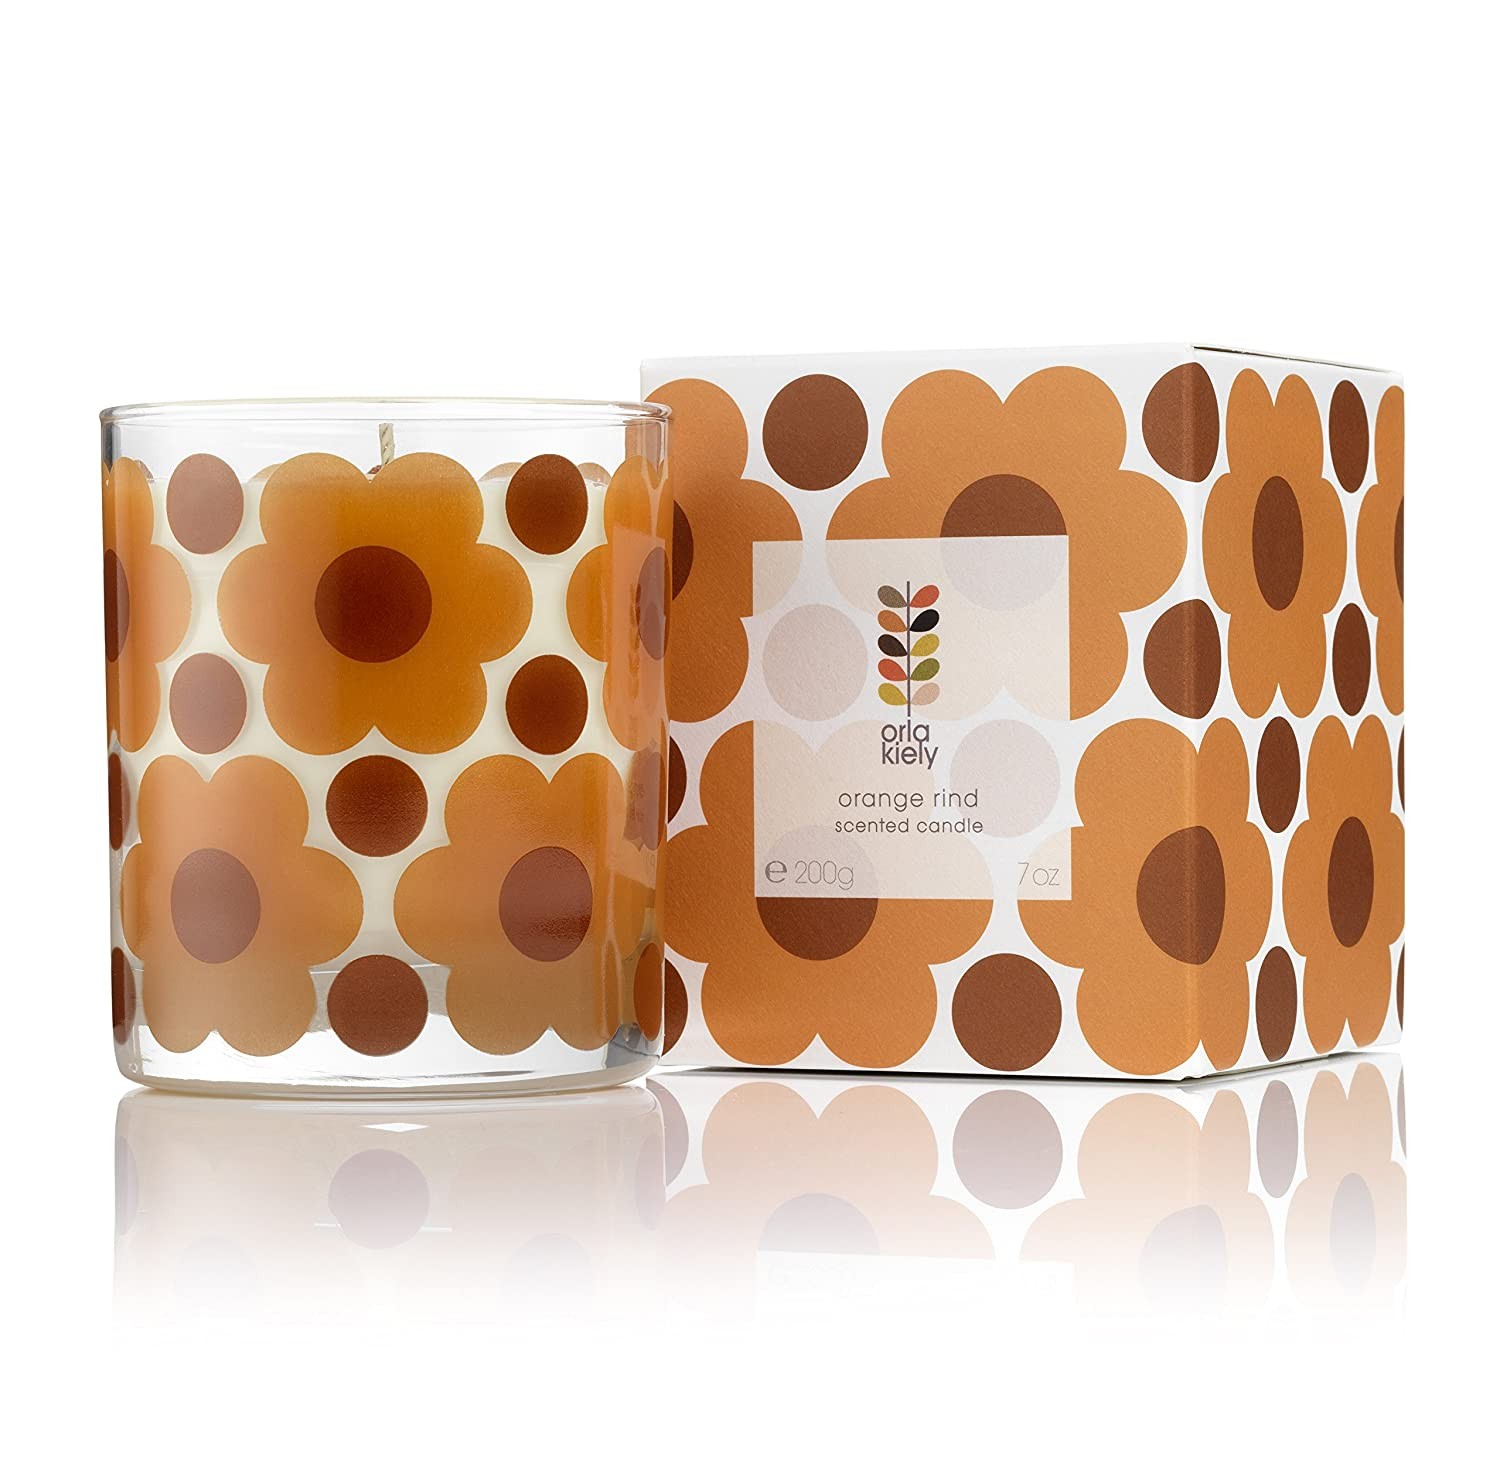 Home by Orla Kiely Orange Rind Scented Candle by Orla Kiely KMI Brands OKHHM0609